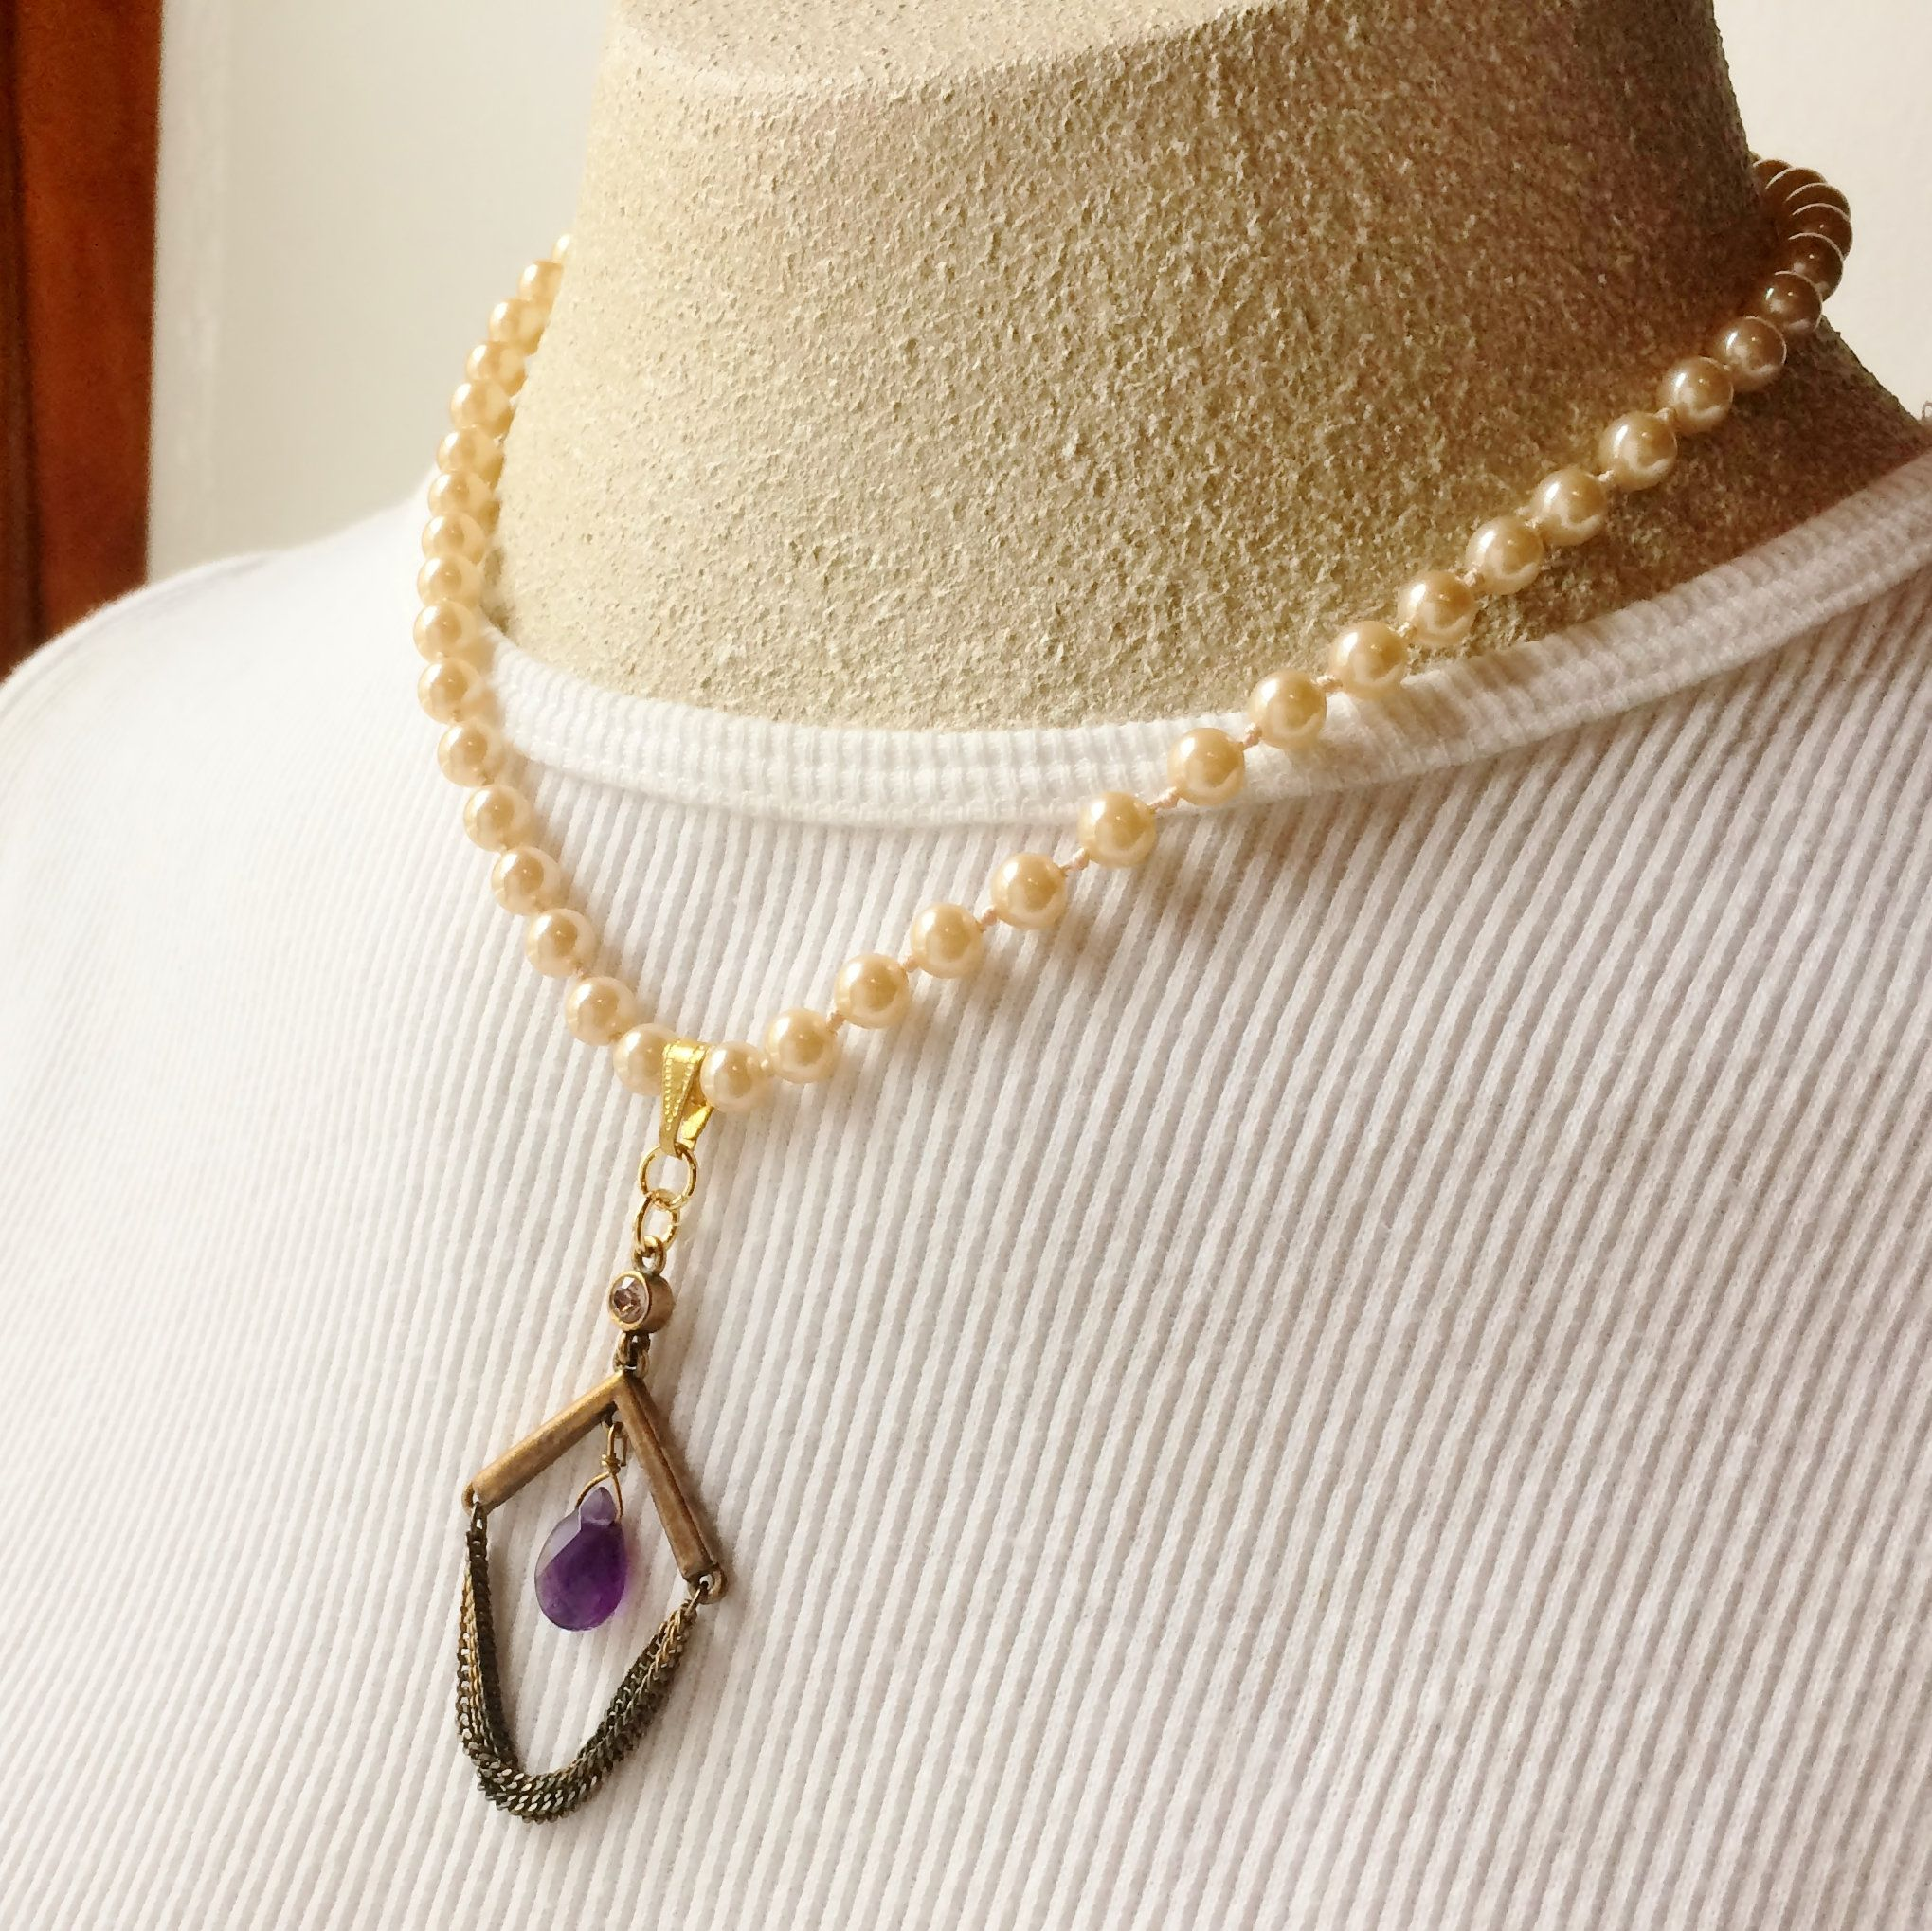 Vintage purple amethyst stone pendant and pearl necklace, Chain tassel, Handcrafted sustainable fashion, Vintage assemblage